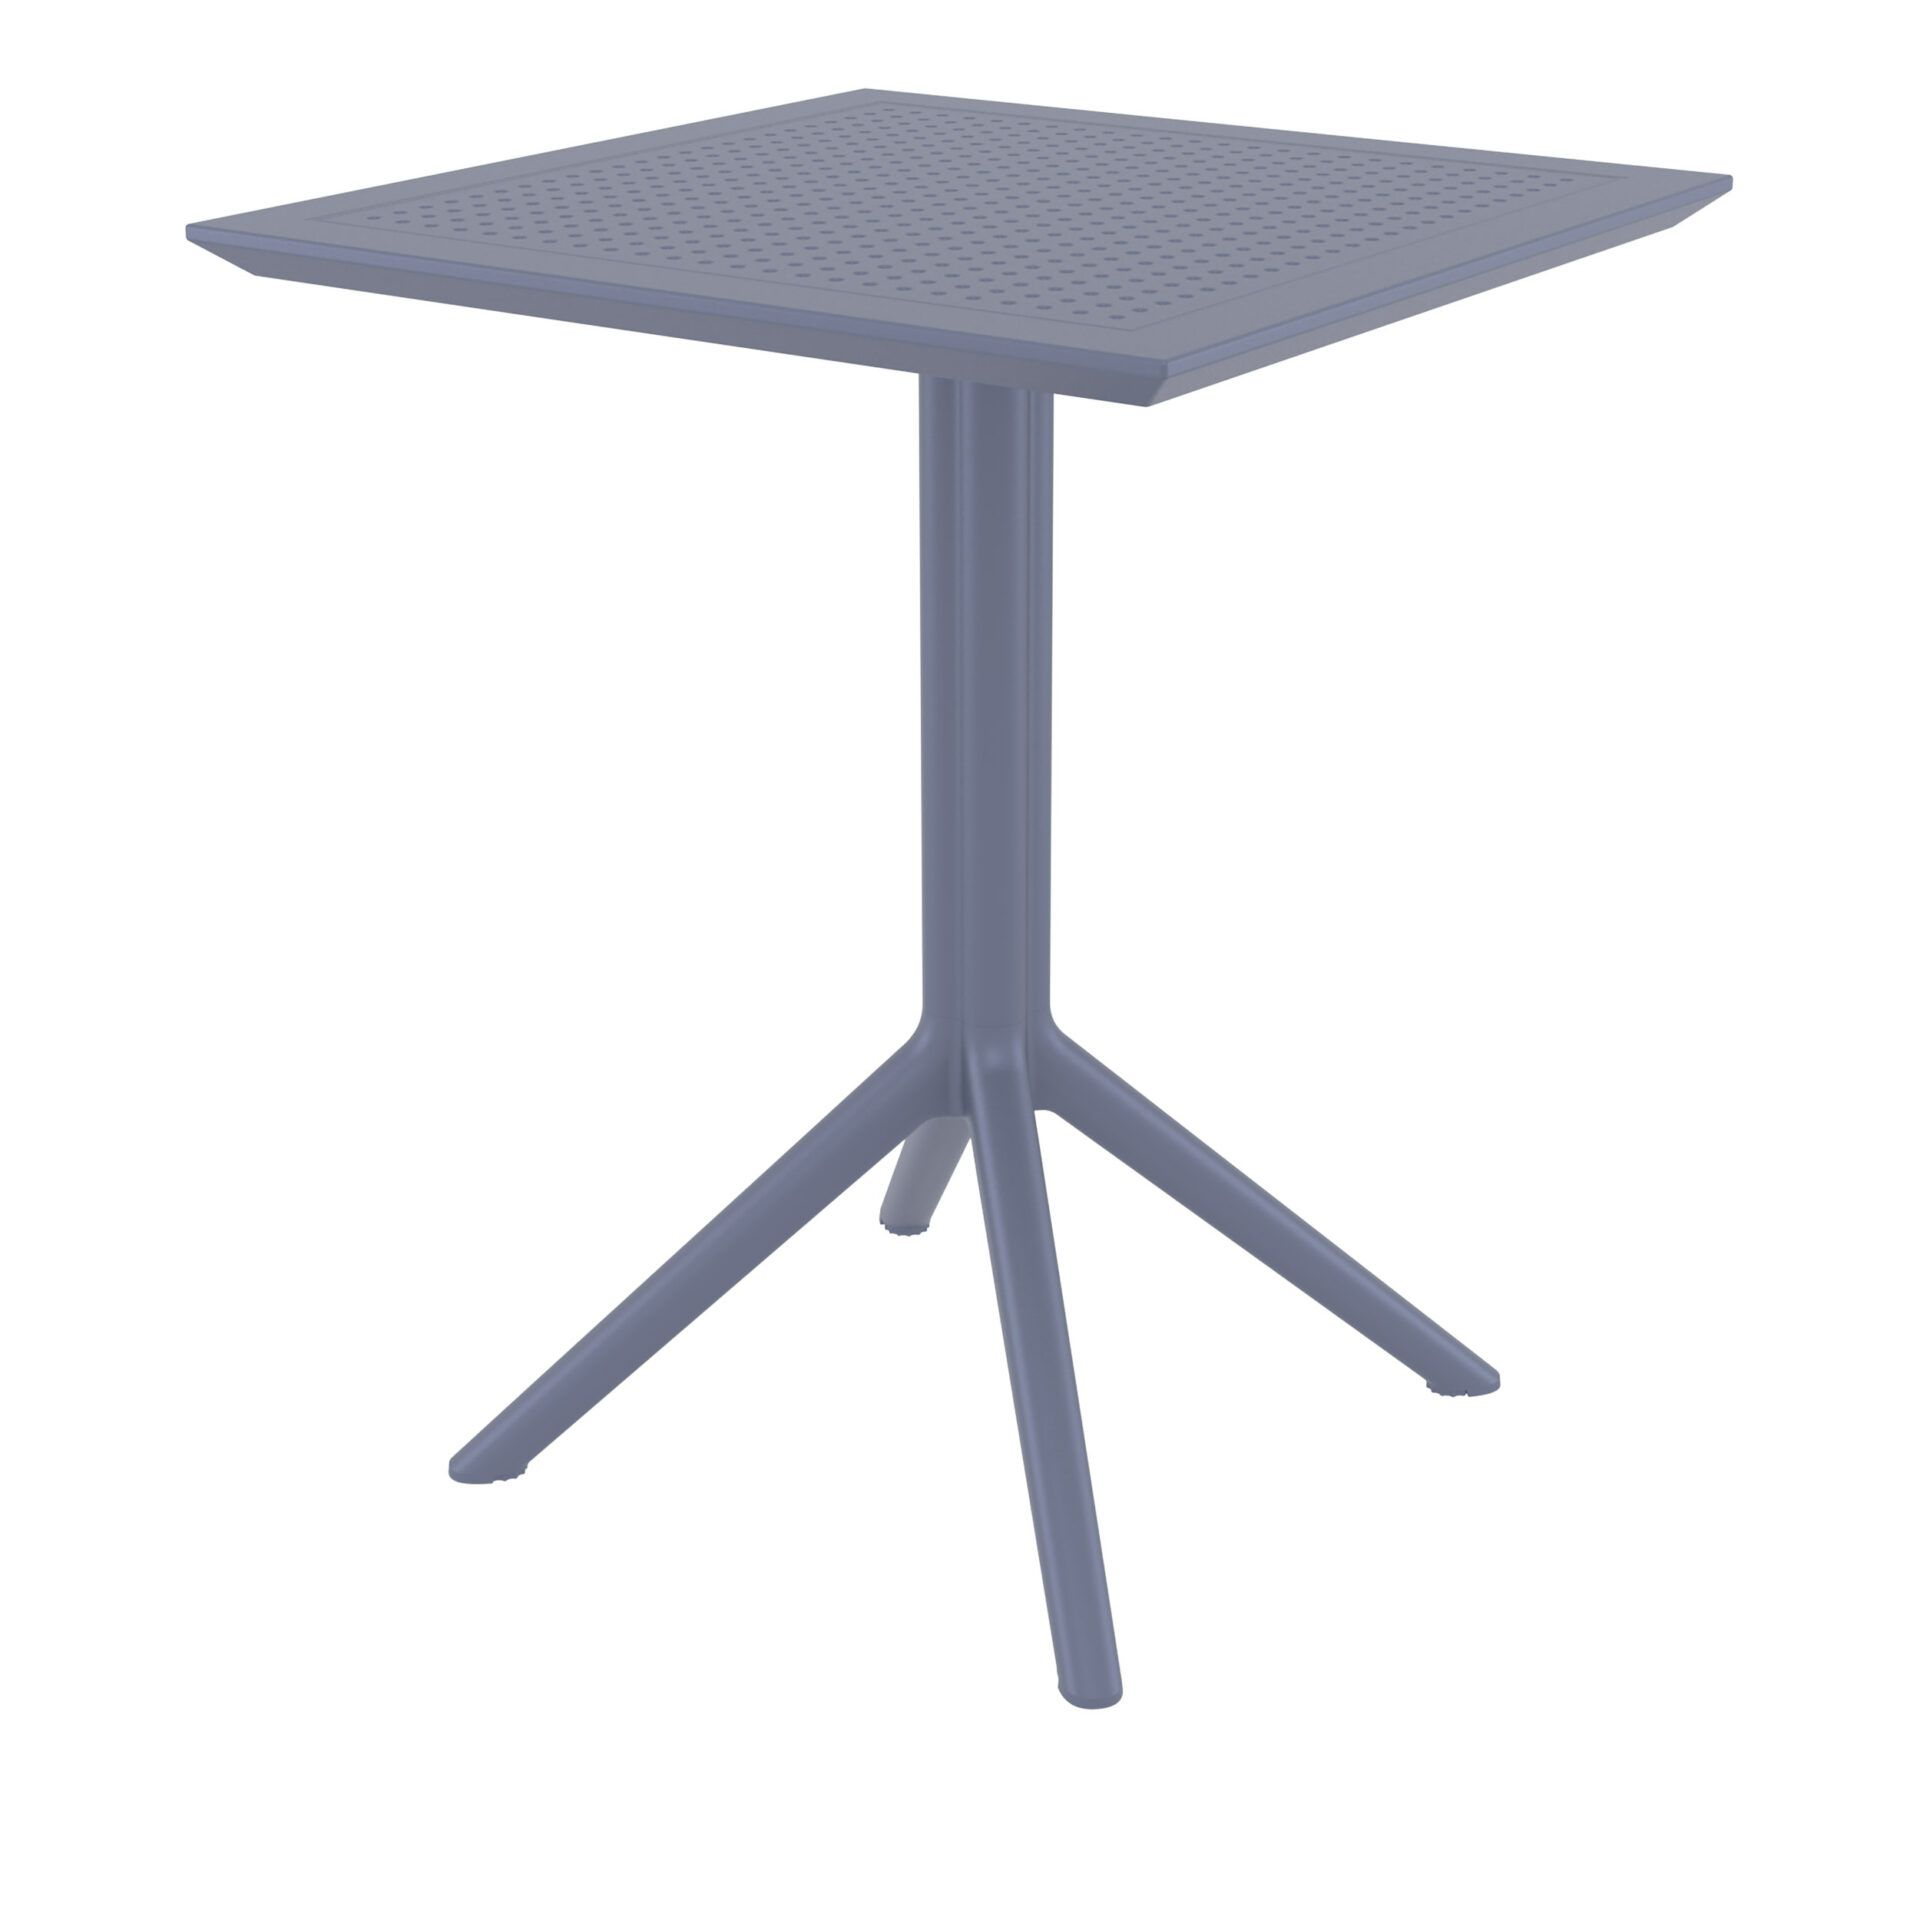 Sky Folding Table 60 - Anthracite